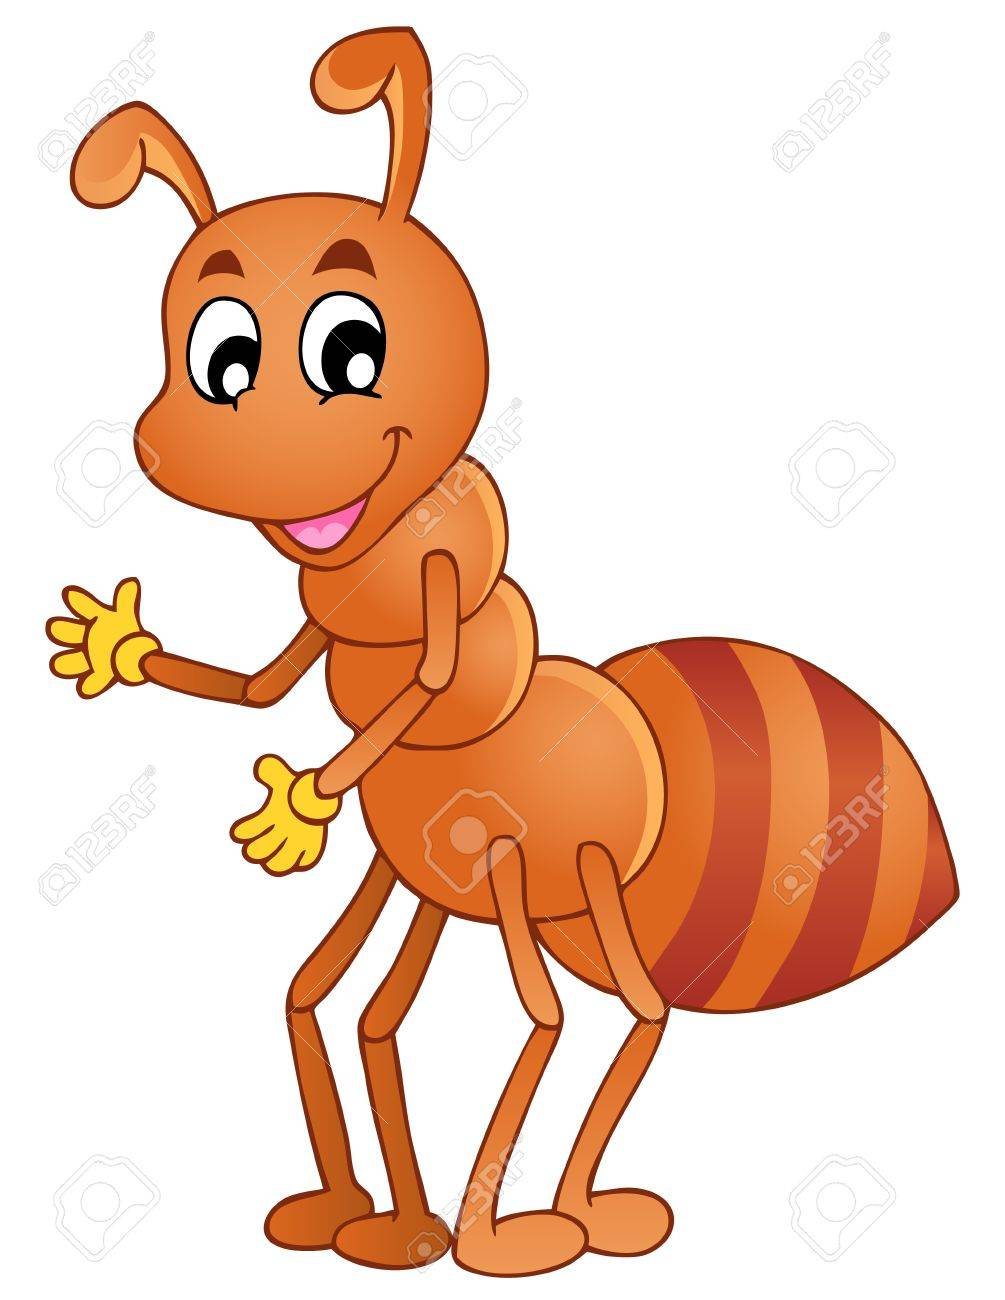 Bee ant clipart banner royalty free Cartoon Ant Pictures | Free download best Cartoon Ant Pictures on ... banner royalty free